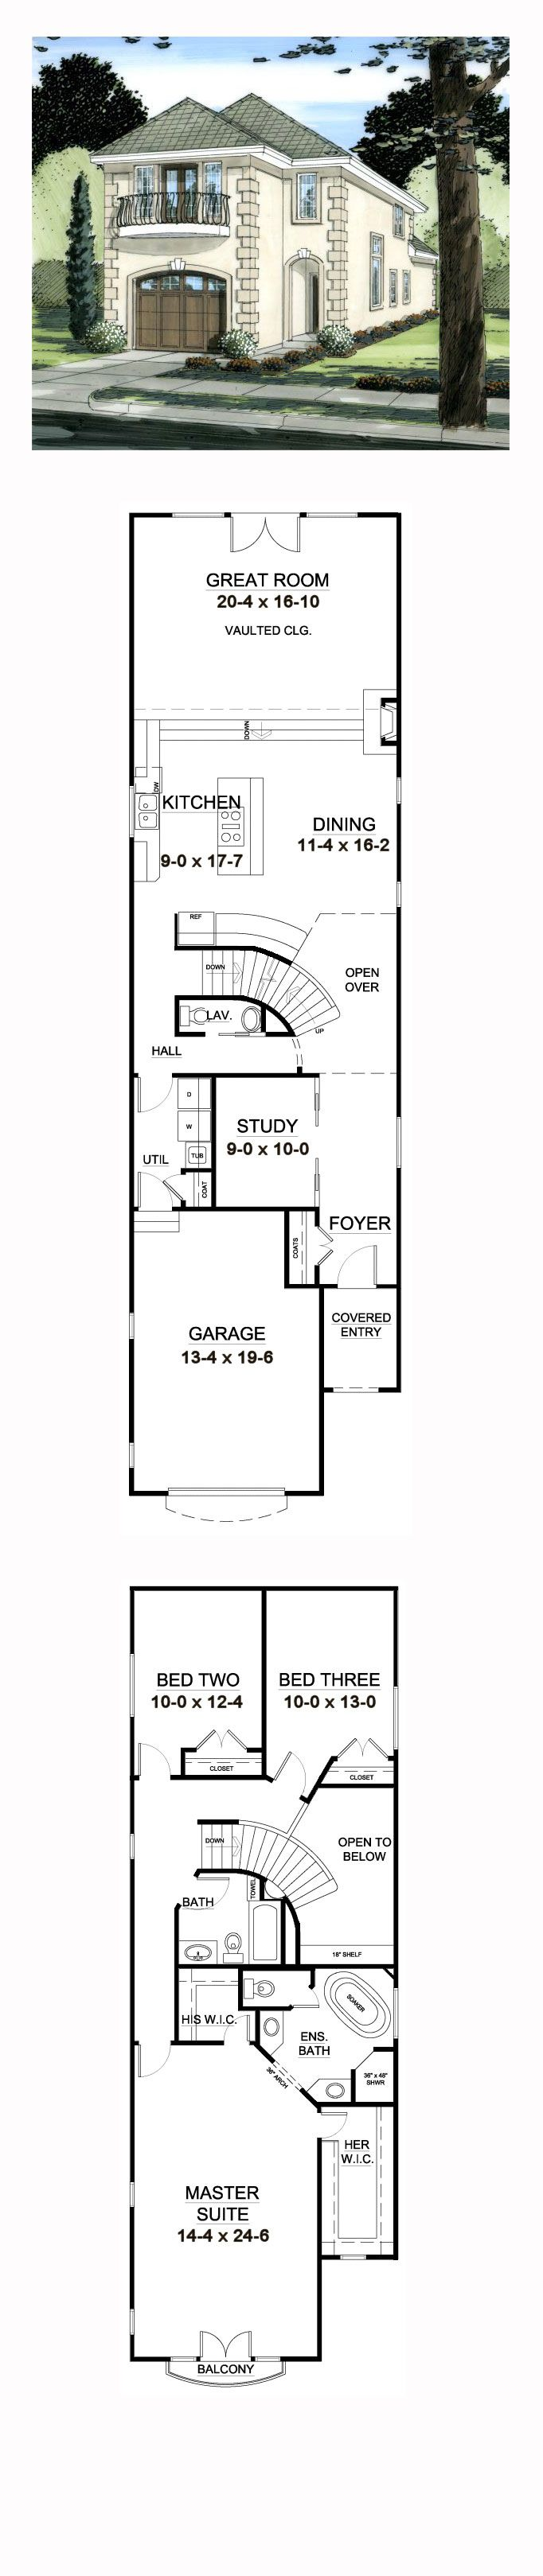 The 25 best narrow lot house plans ideas on pinterest narrow house plans retirement house - Narrow house plans for narrow lots pict ...